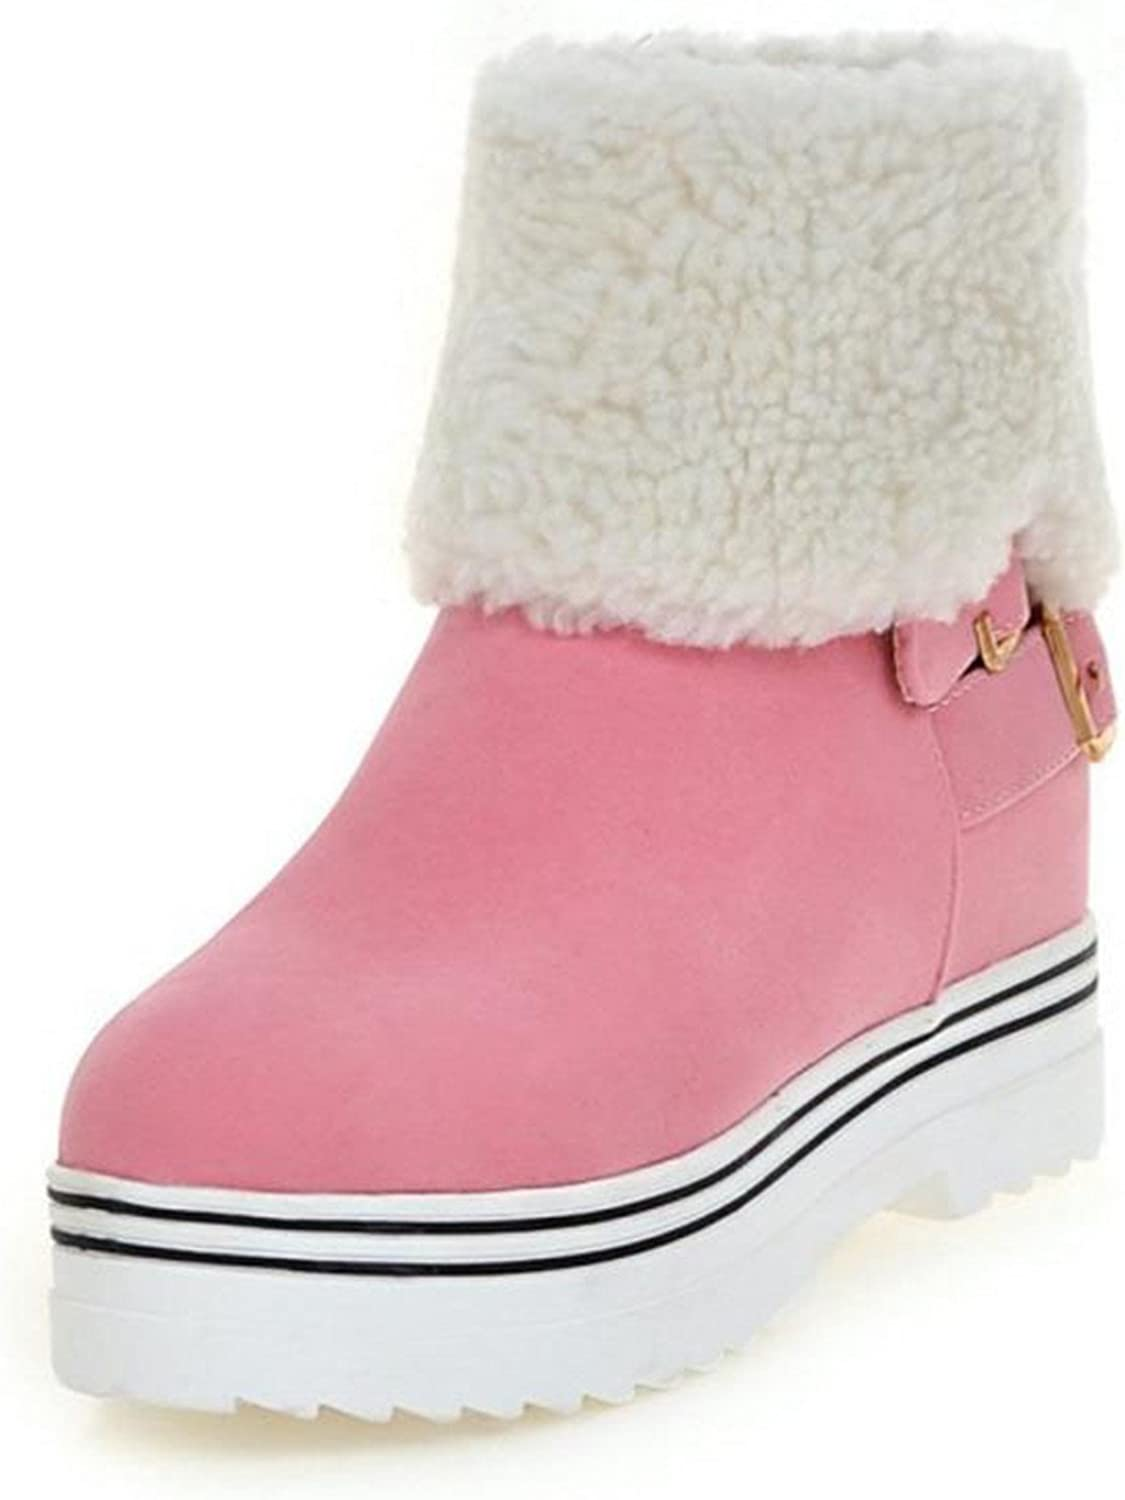 Better Annie Size 34-43 Women Med Heel Ankle Snow Boots Women Warm Plush Inside Agrafe Thick Platform shoes Women Cold Winter shoes